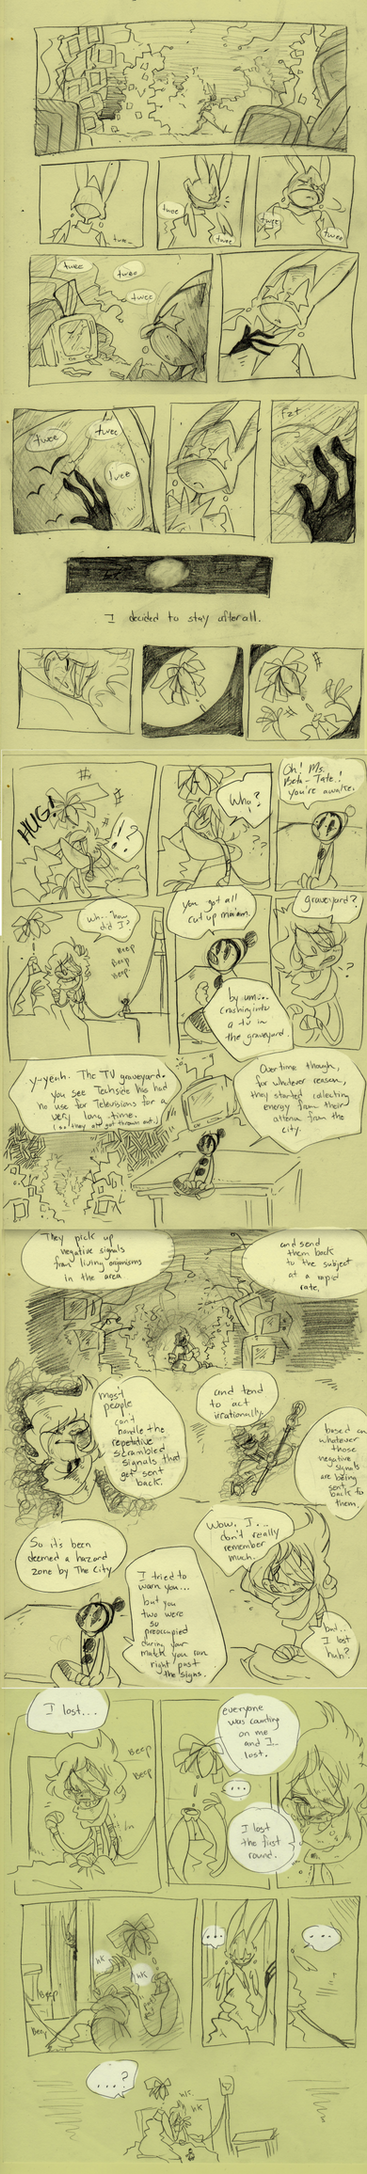 The City- Round 2 Pg. 1 by CurlyPoCkY